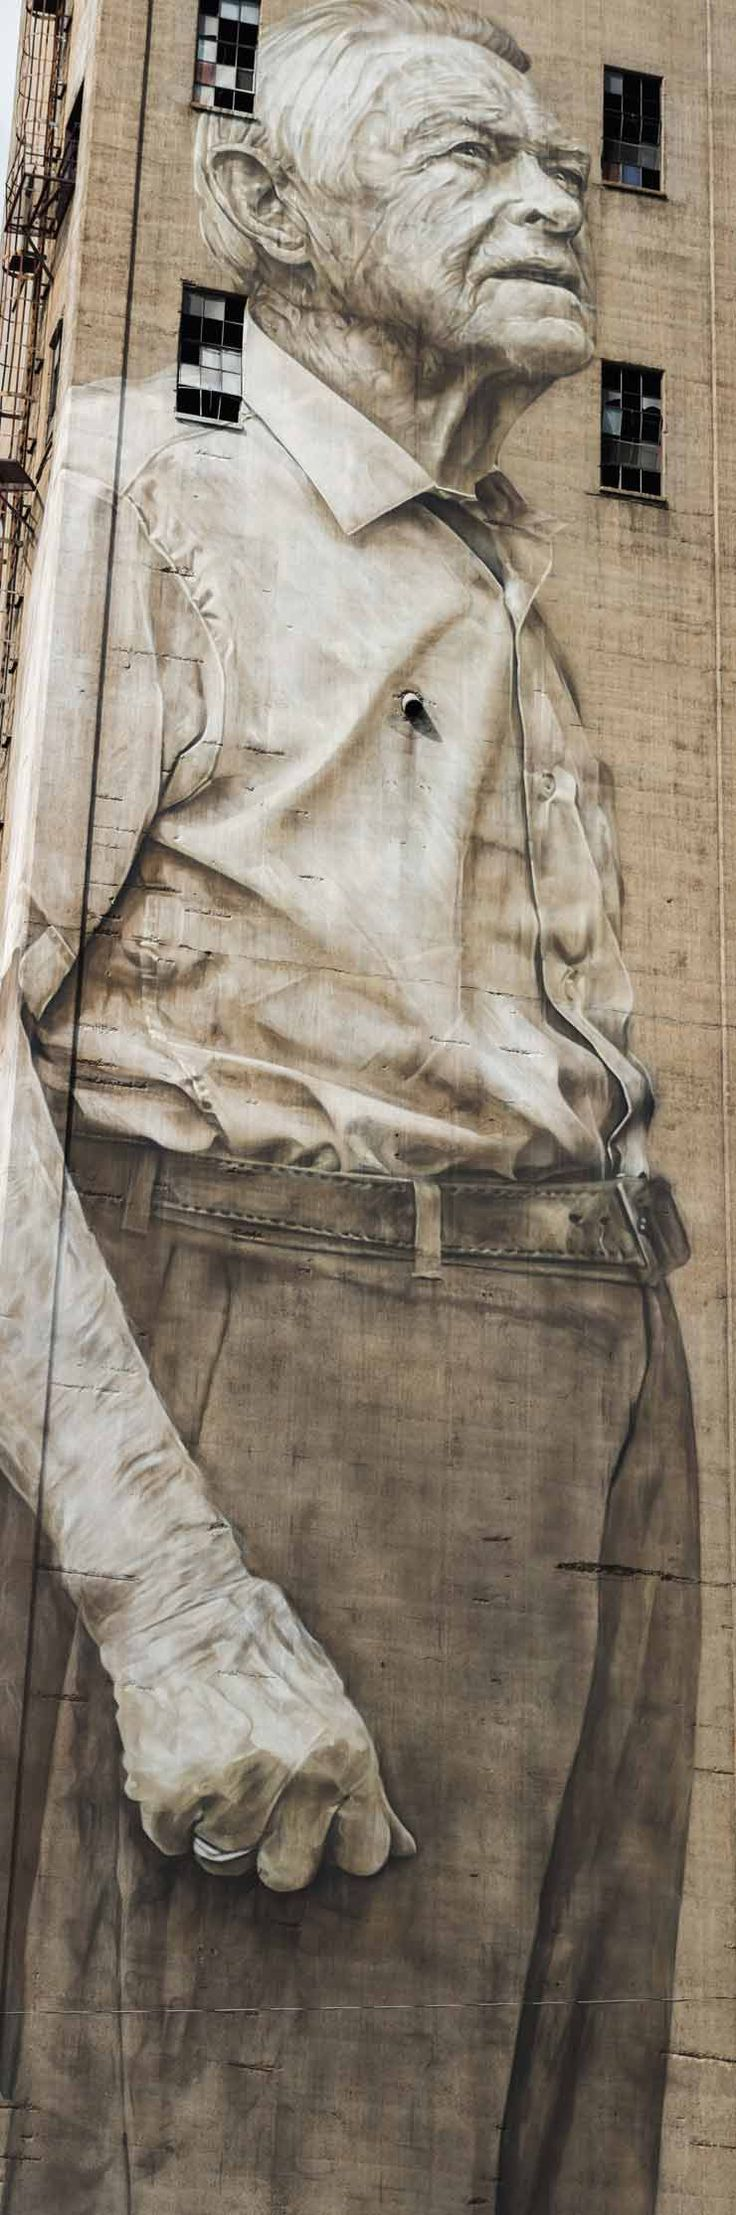 "Guido Van Helten, Mr. Estes, and Changing ""The Nations"" in Nashville : Brooklyn Street Art"